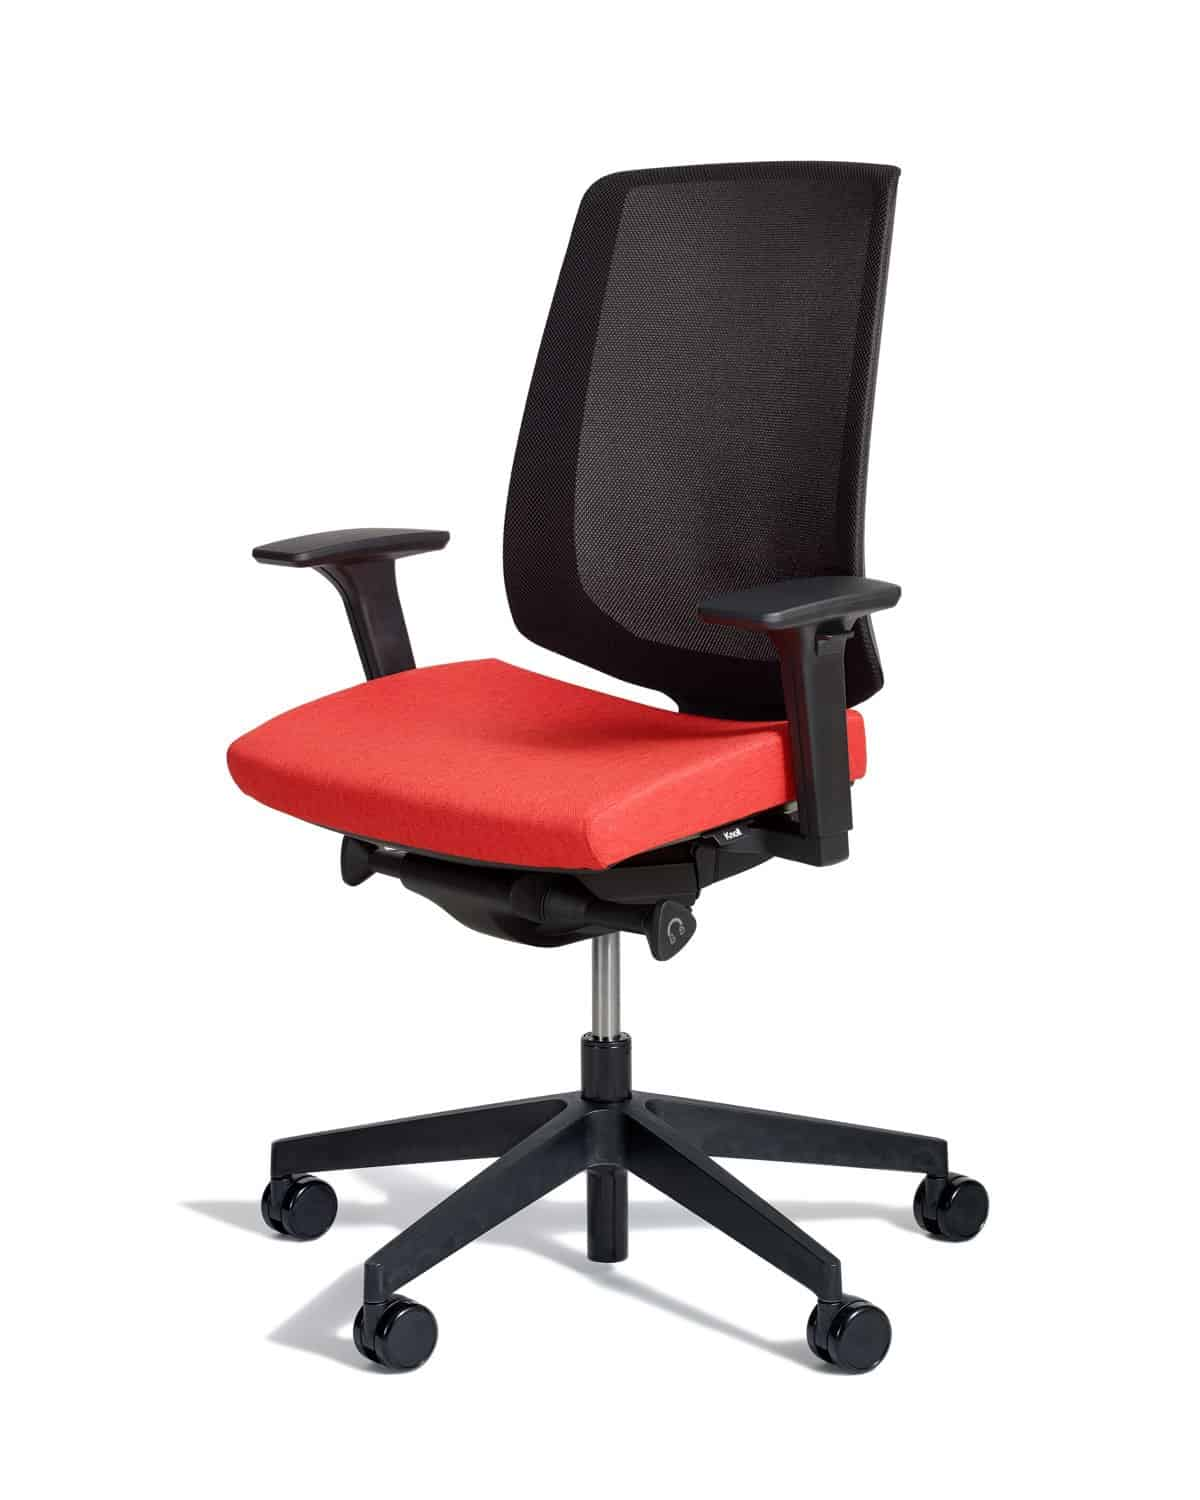 Knoll K Chair With Fdl Inc Chairs.